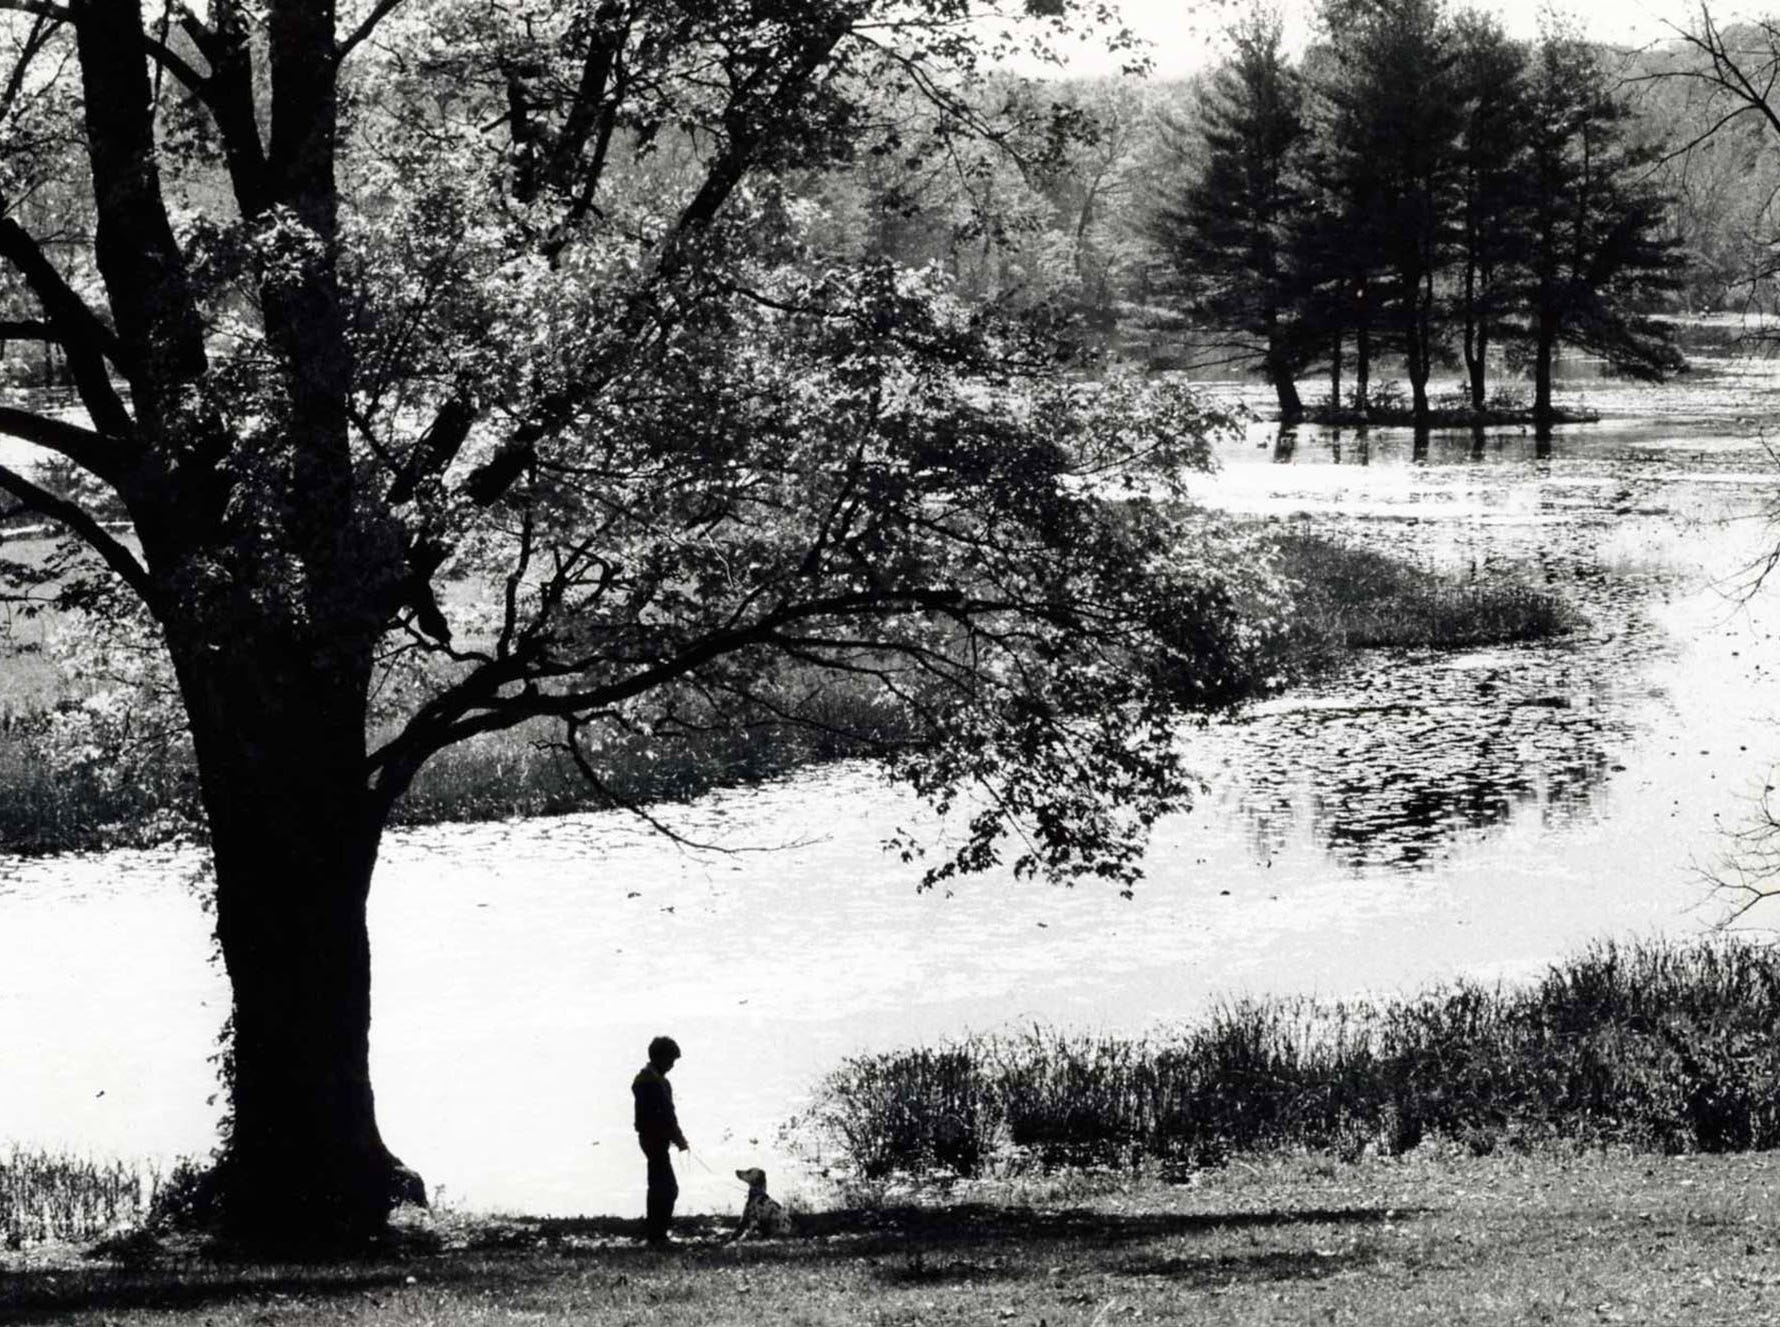 Oct. 14, 1981:  Joel Schmidt walking his dog Beauty at the Ringwood Manor State Park.